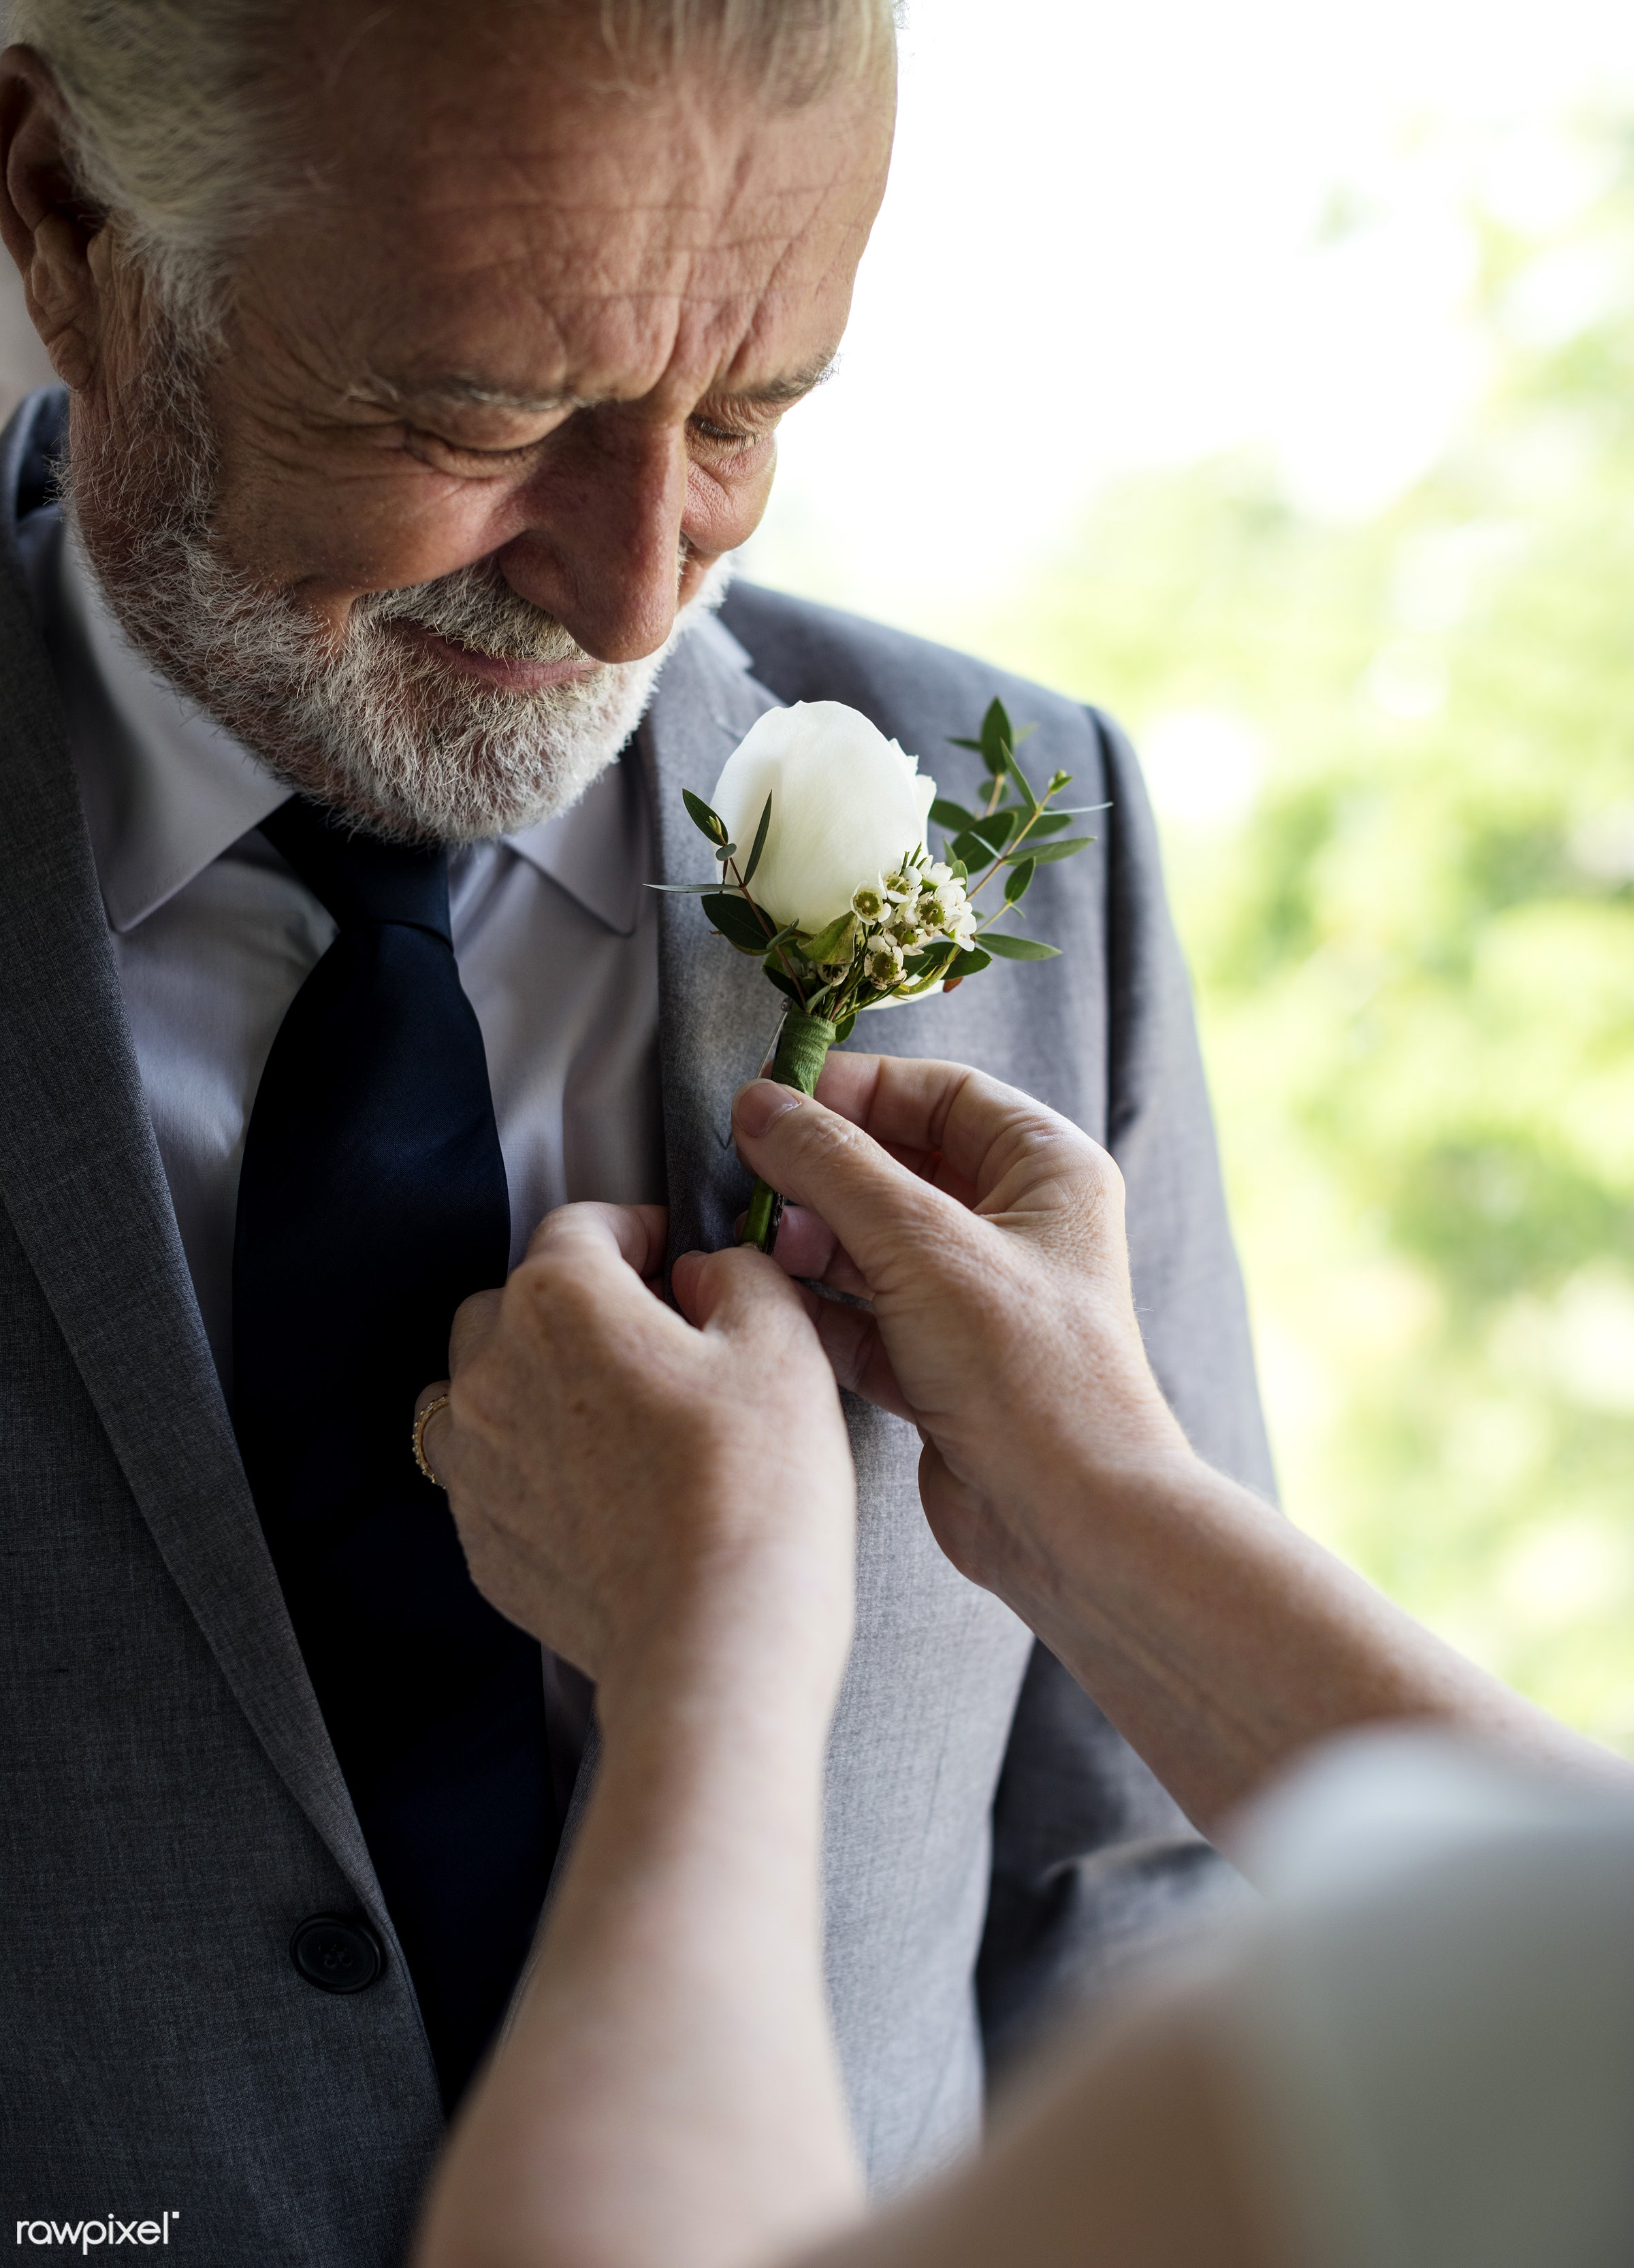 bouquet, occasion, people, caucasian, love, white rose, hands, event, gathering, couple, celebrate, cheerful, smiling,...